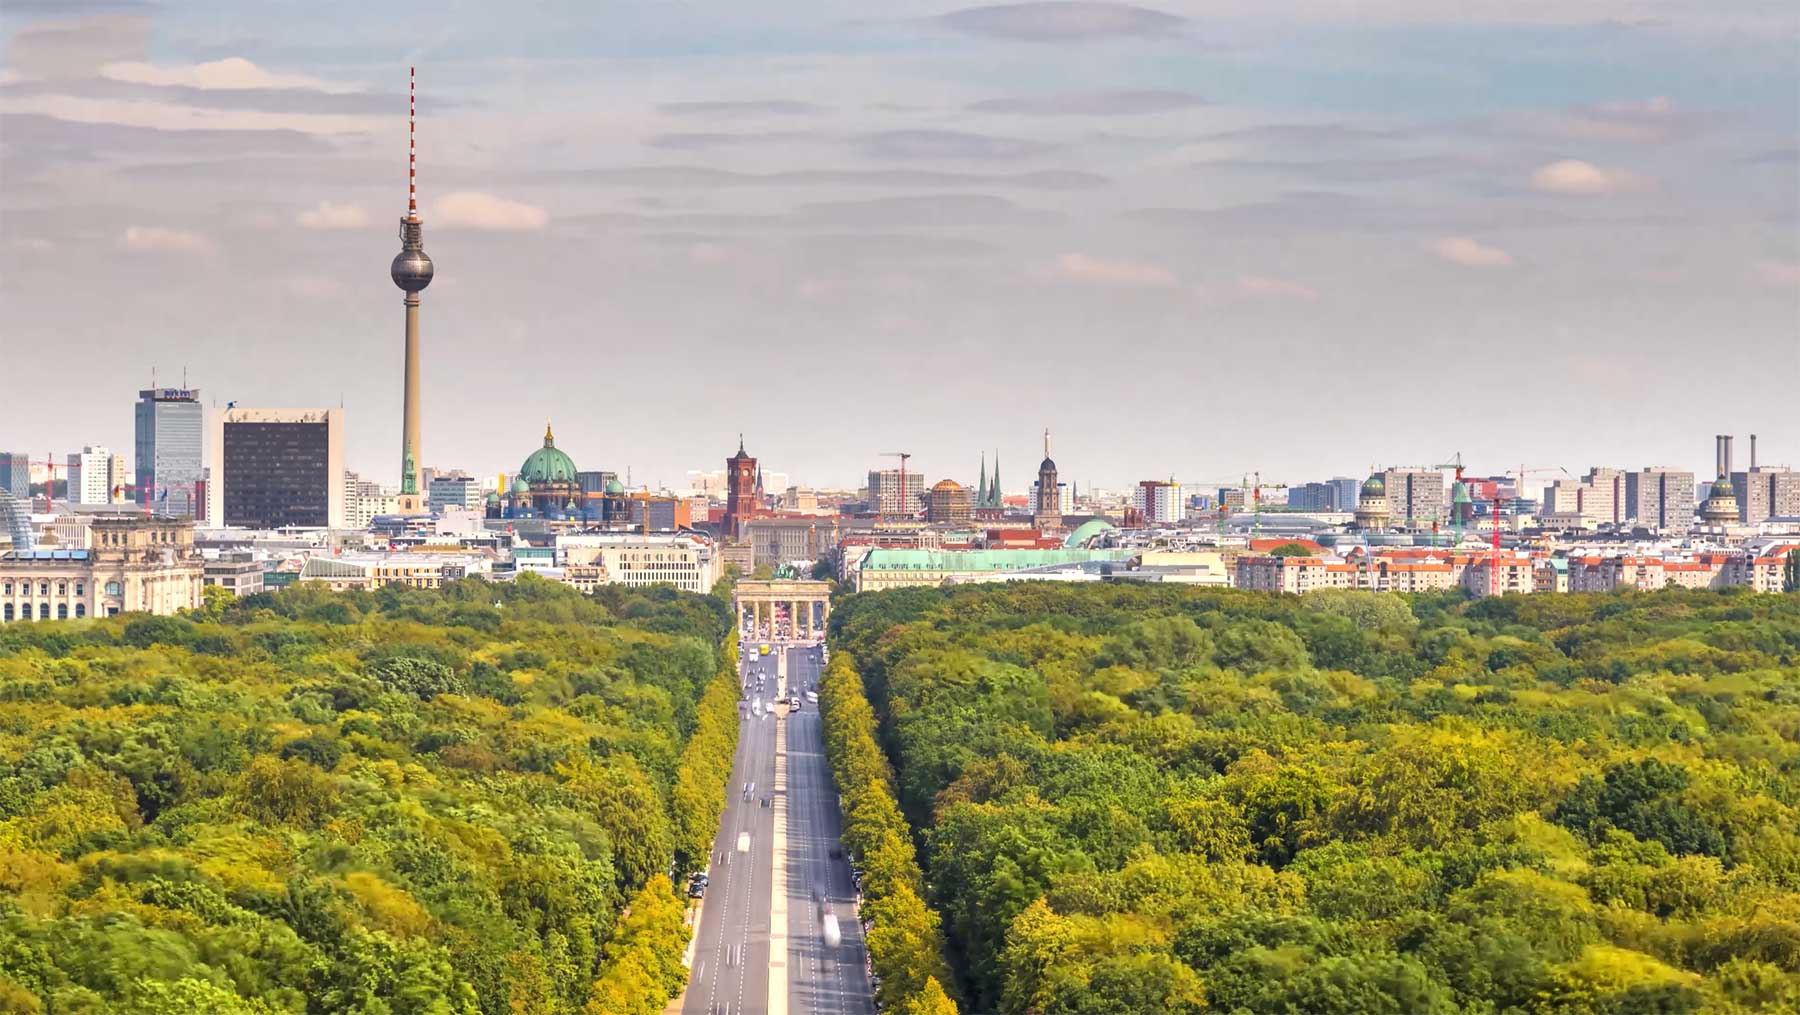 Berlin: Timelapse-Stadtportrait in 8K berlin-8k-timelapse-stadtportrait-video